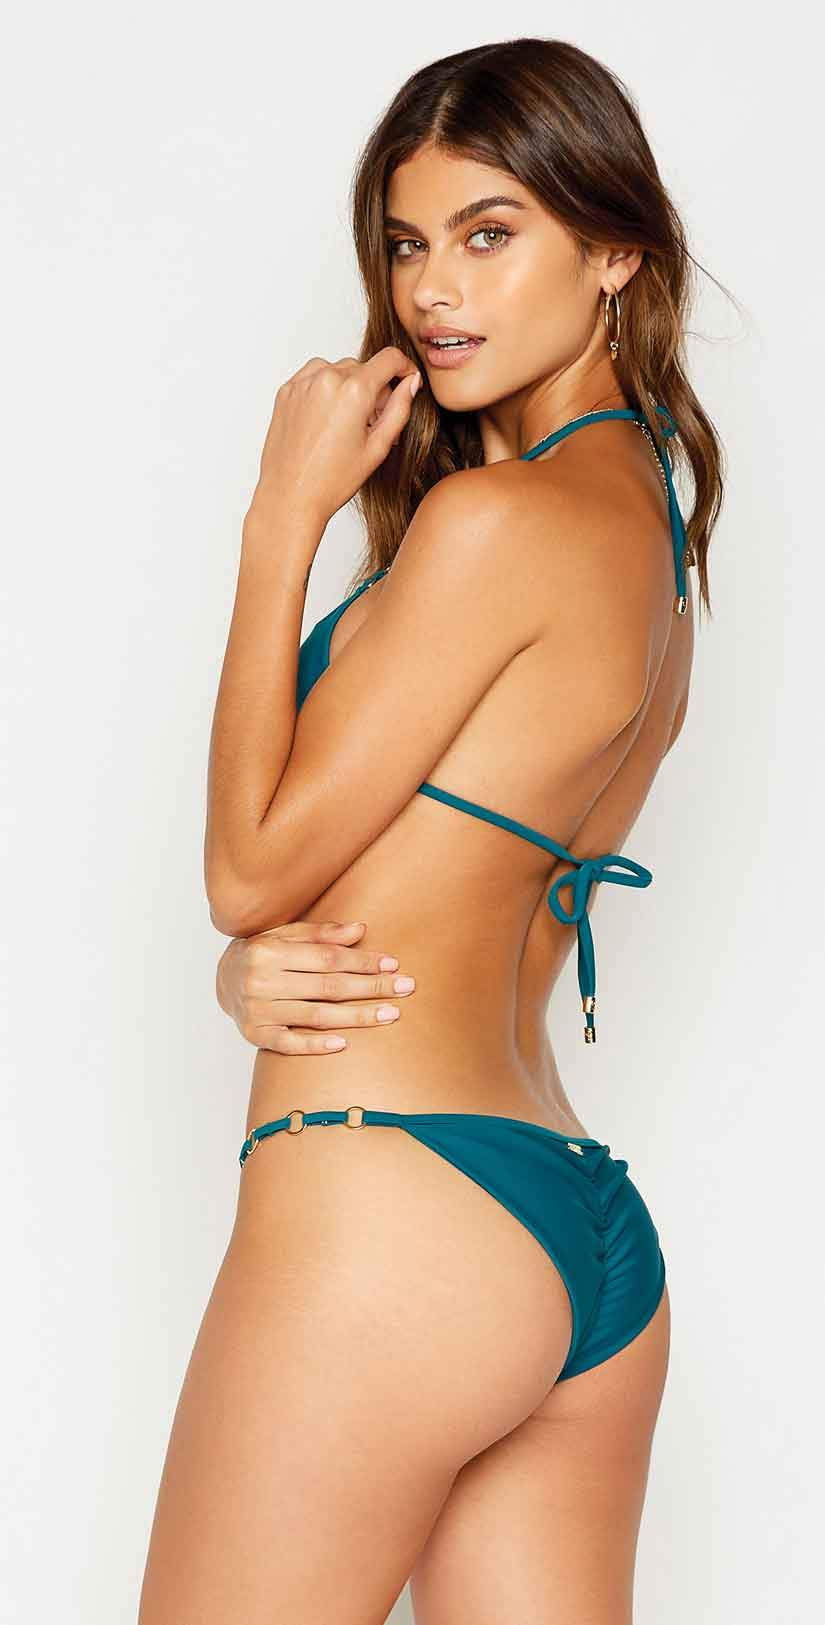 Beach Bunny Ireland Keyhole Tri Top in Teal: